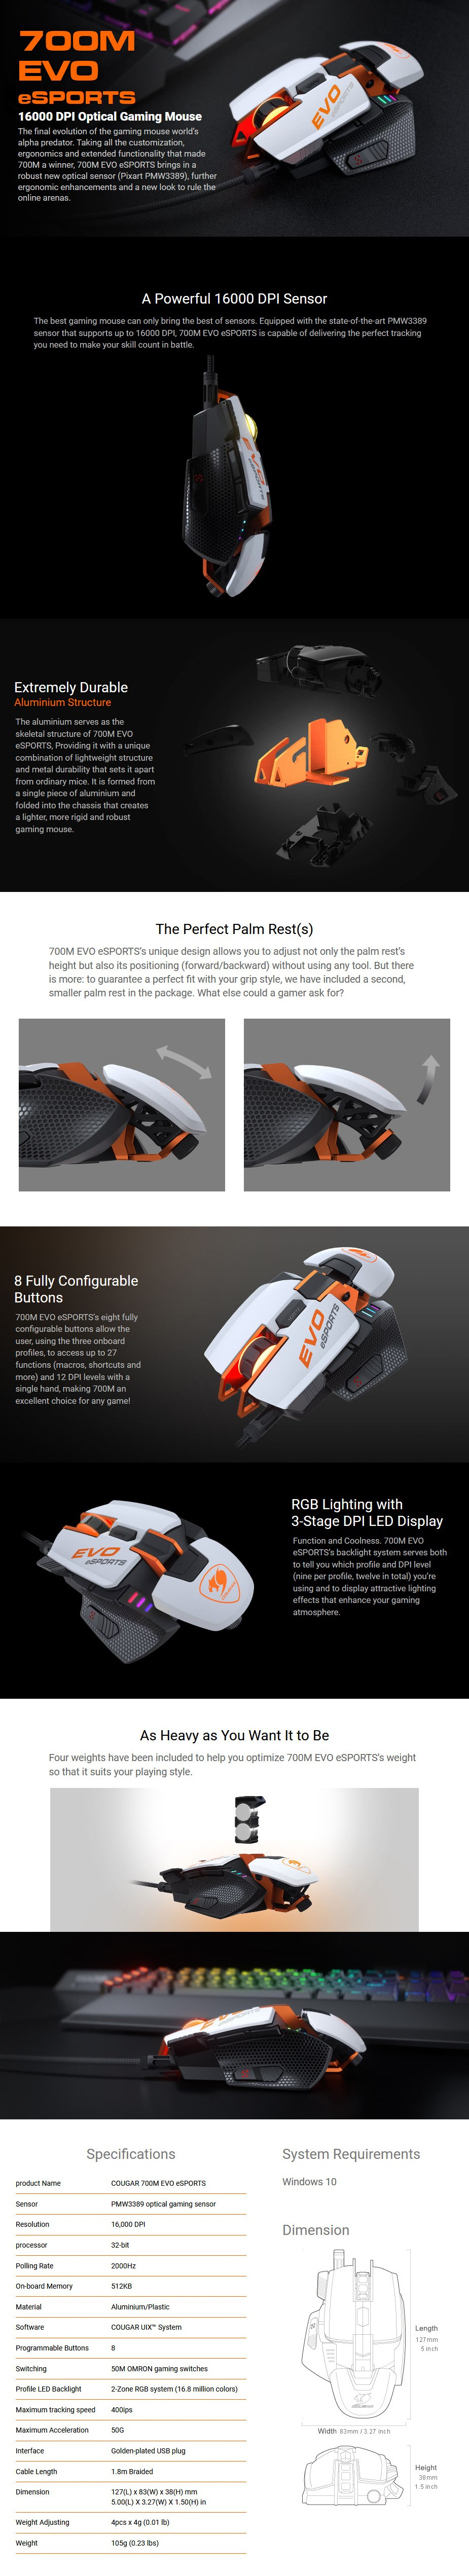 Cougar 700M EVO eSPORTS RGB Optical Gaming Mouse - White - Overview 1